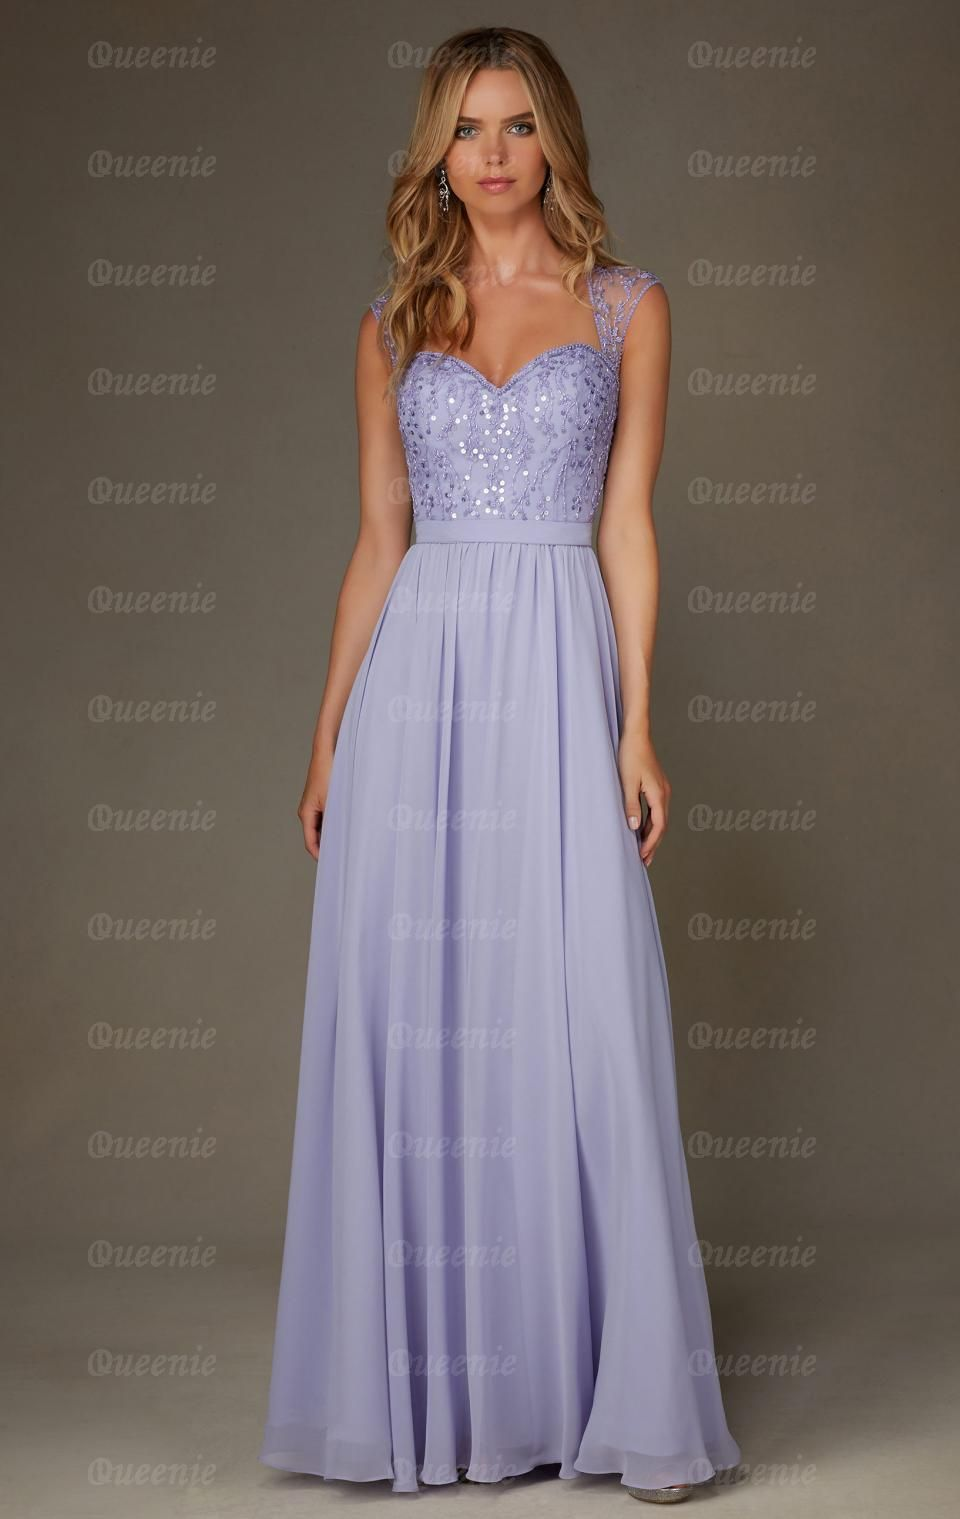 Online Lilac Bridesmaid Dress BNNCL0015-Bridesmaid UK | Brides ...